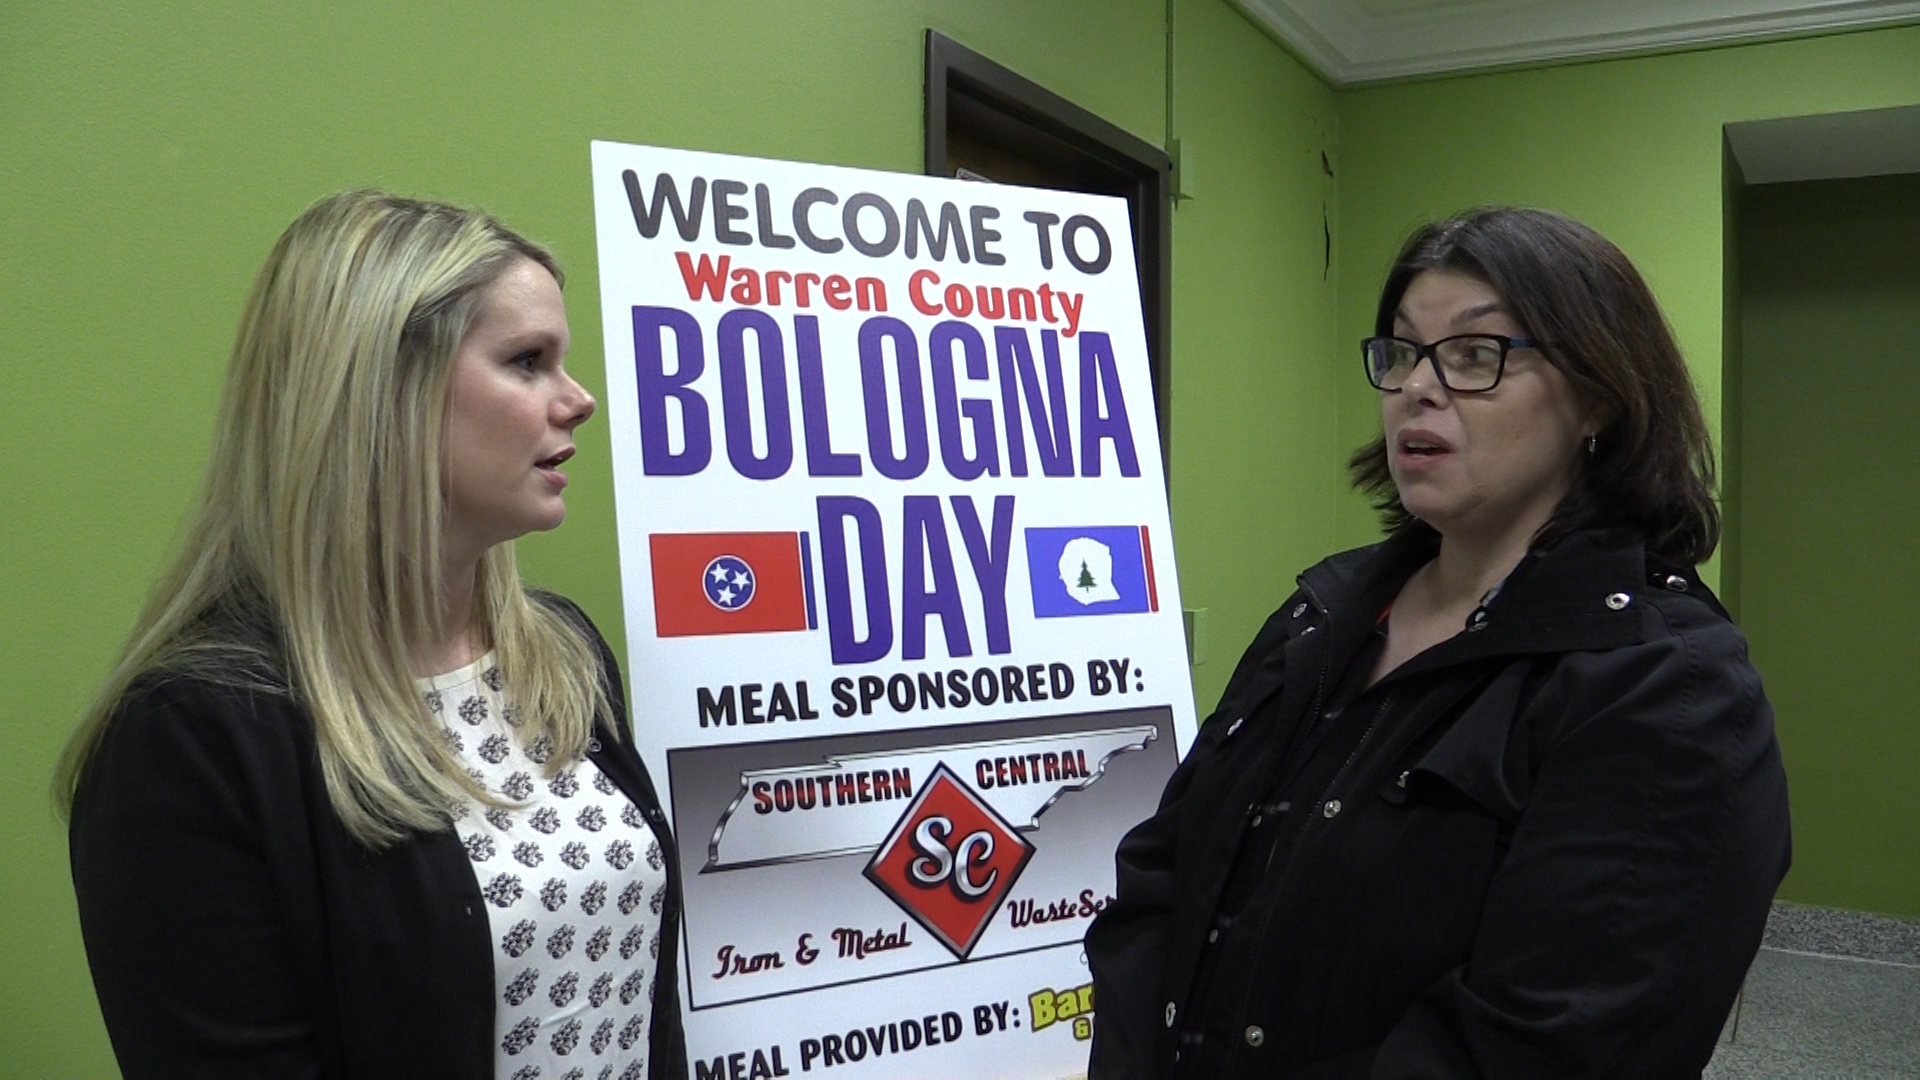 VIDEO - Bologna Day on Capitol Hill